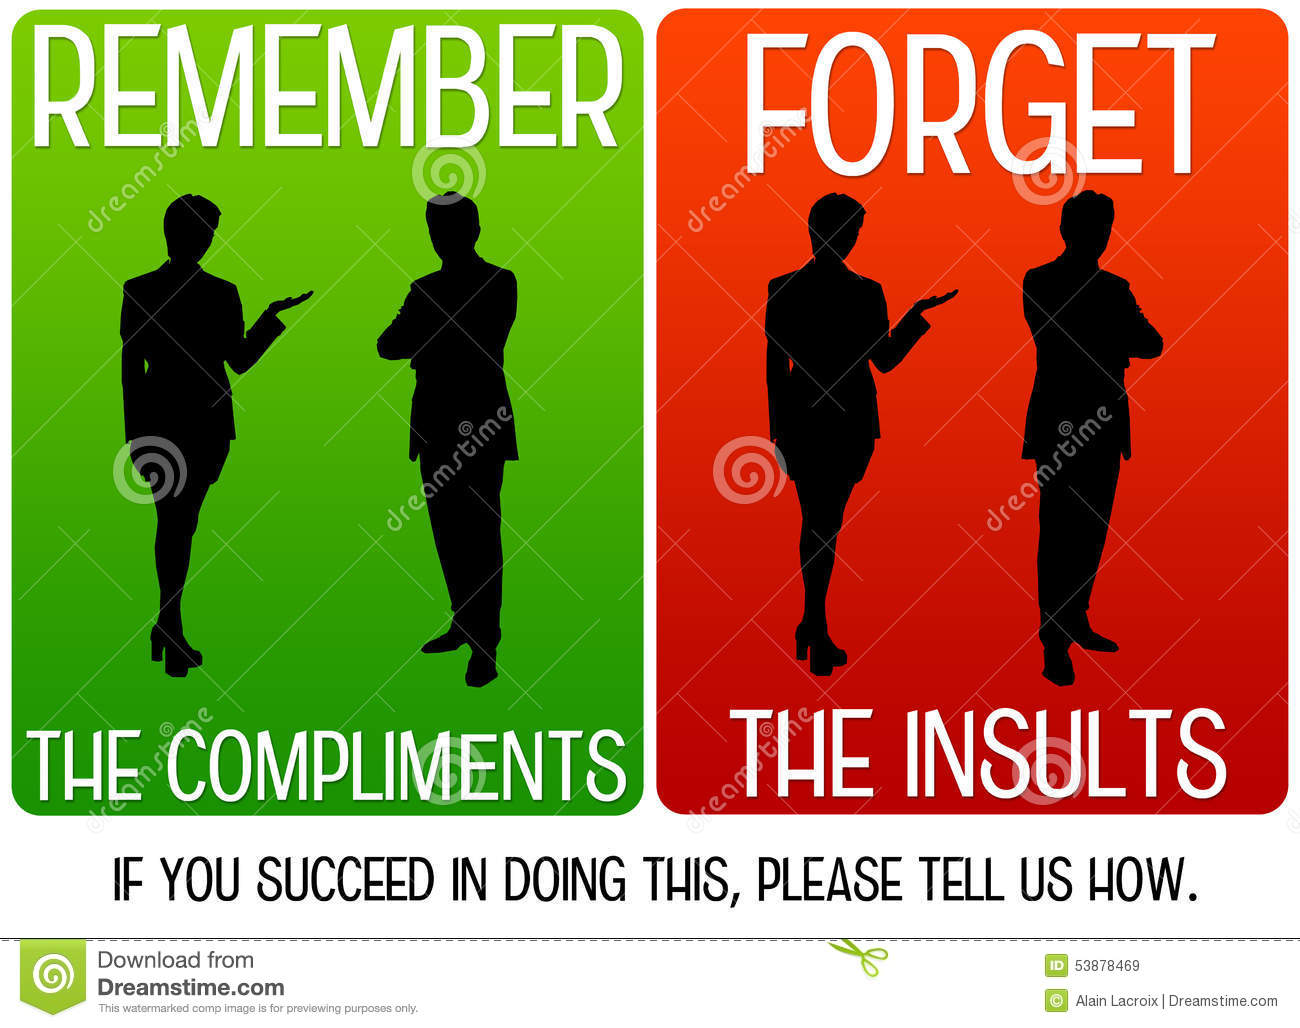 Compliments and insults